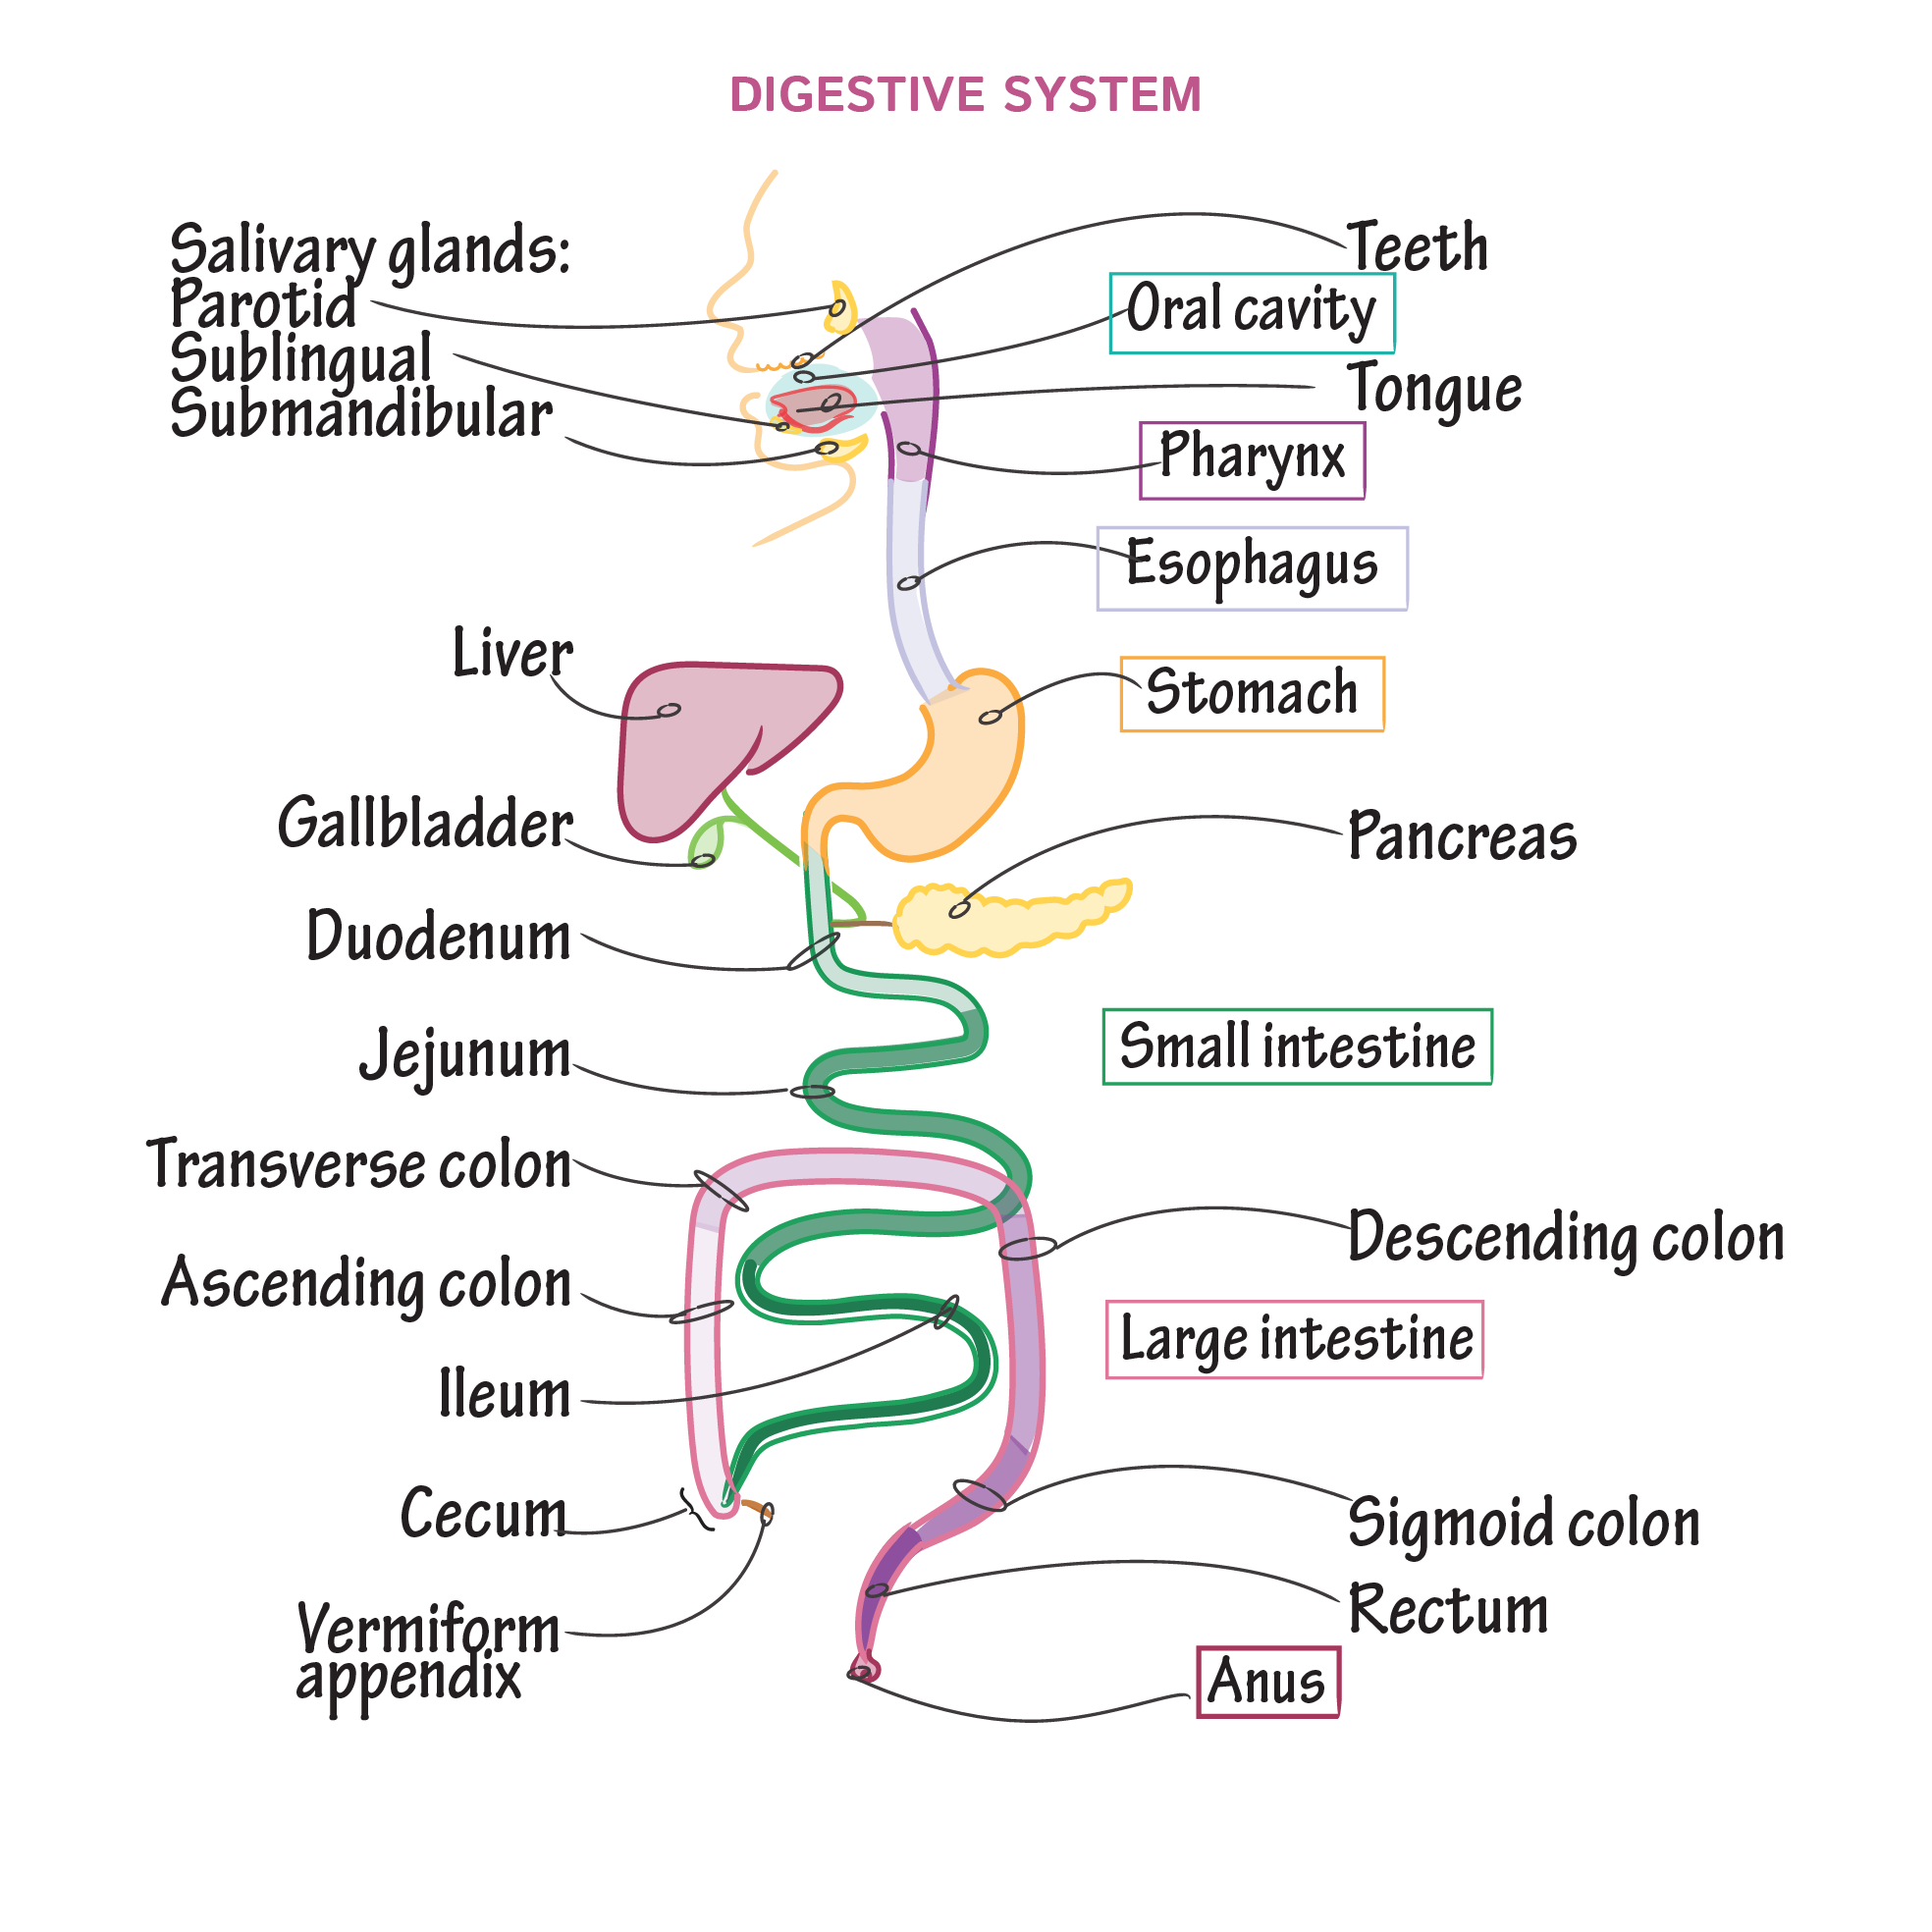 Gross Anatomy Glossary: Digestive System Overview | Draw It to Know It